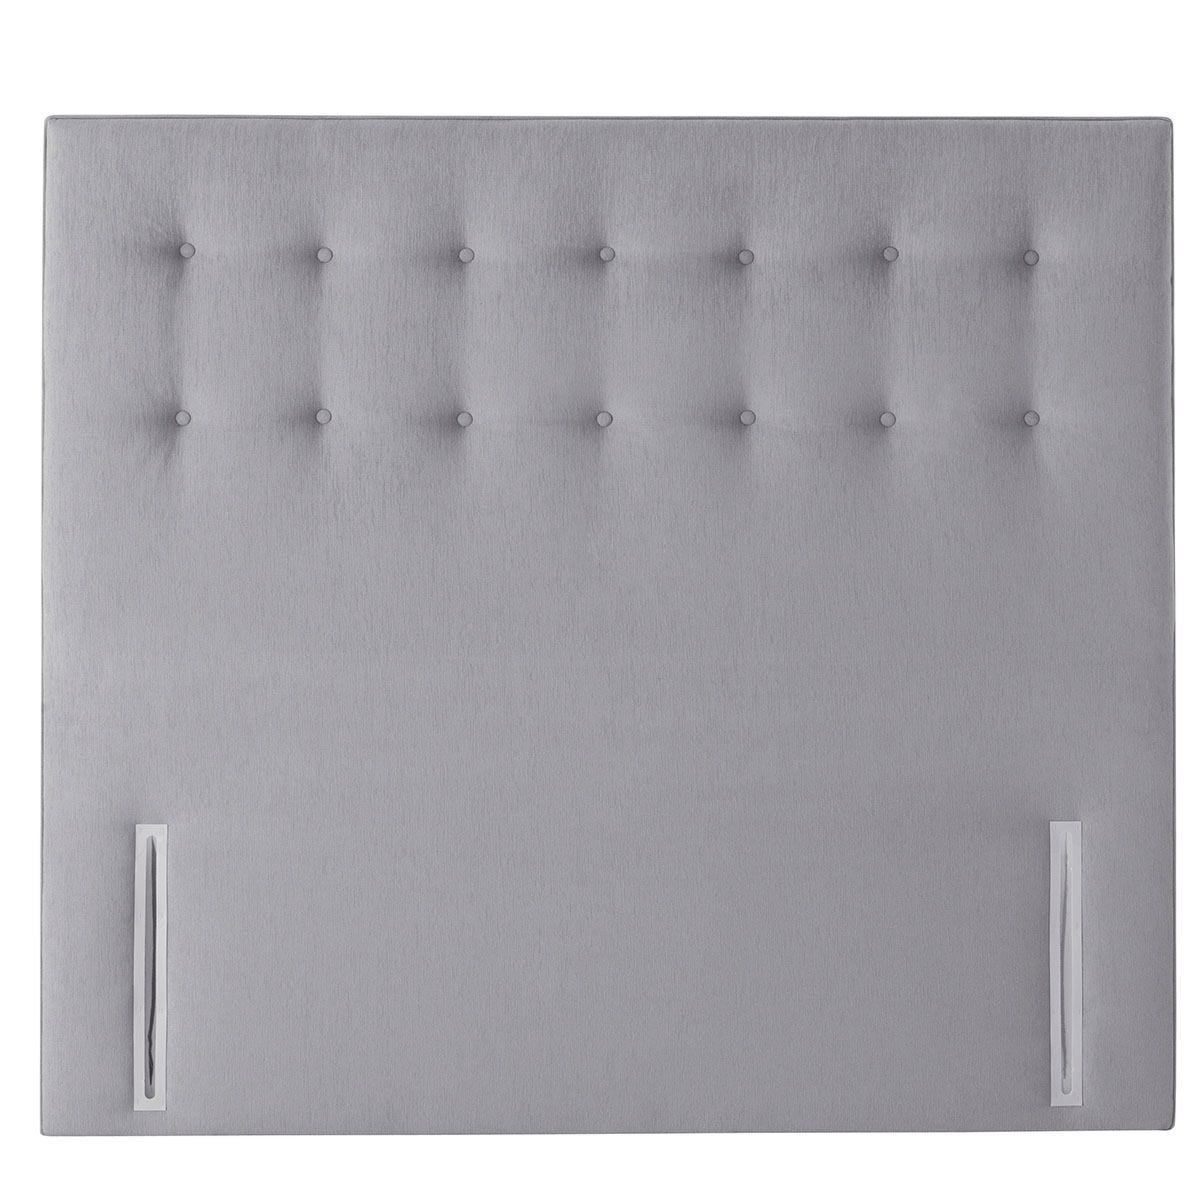 Silentnight Goya Grey Headboard - Super King